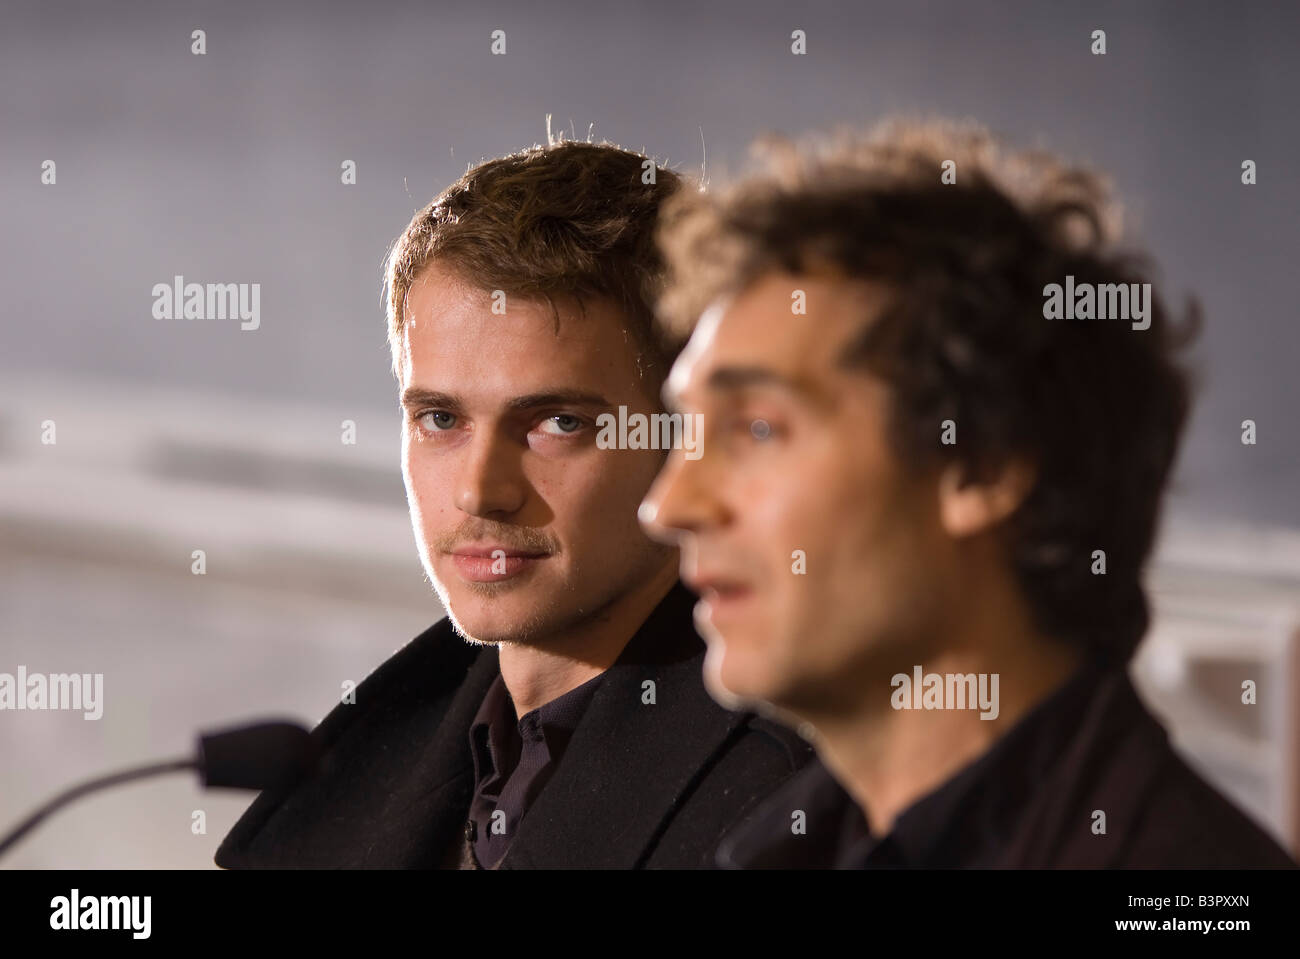 Jumper star Hayden Christiansen participates in a panel discussion at MIT with Jumper director Doug Liman and MIT - Stock Image